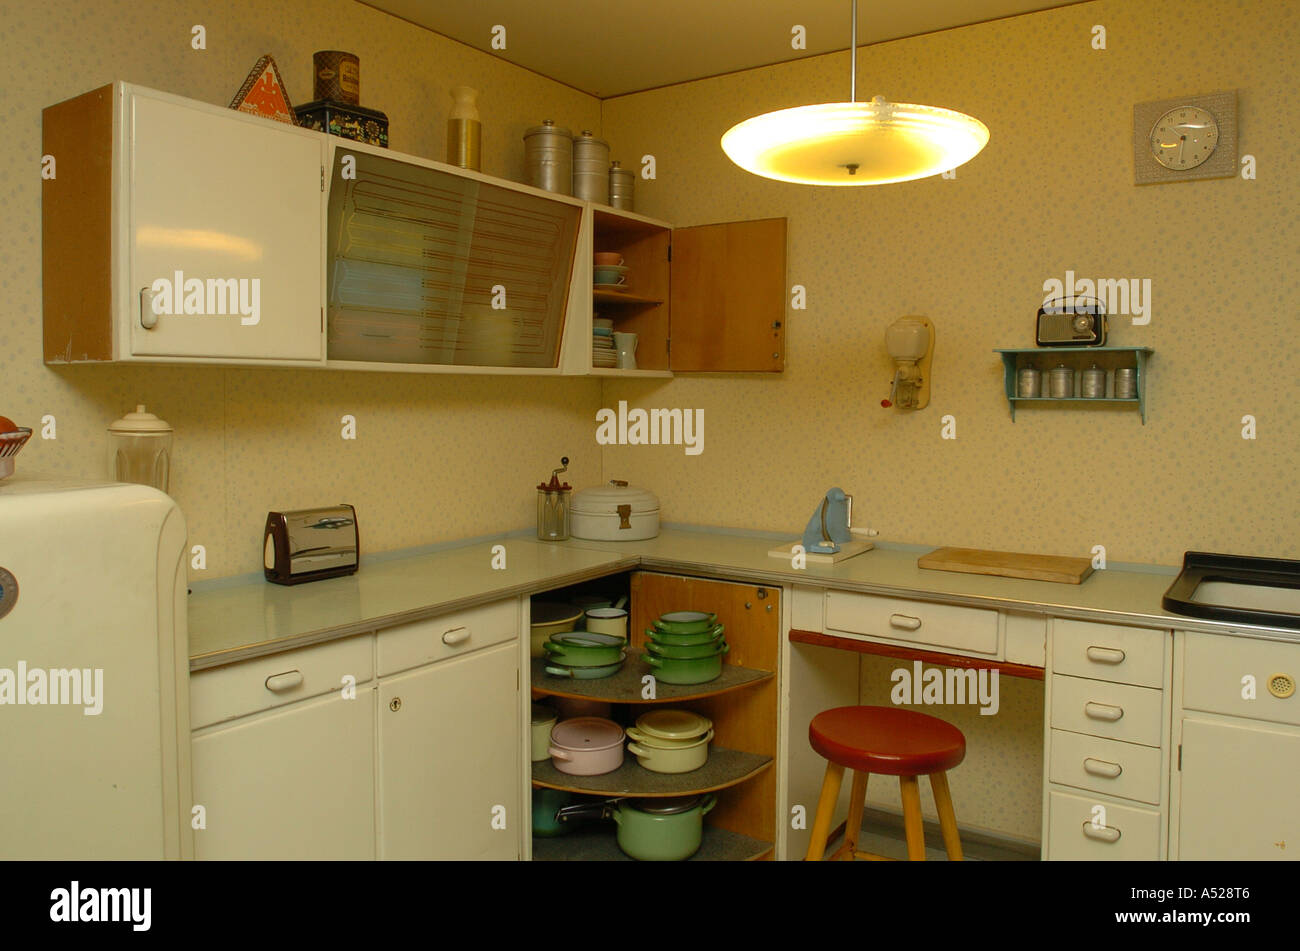 Apartment In 50s Style Kitchen Stock Photo Royalty Free Image